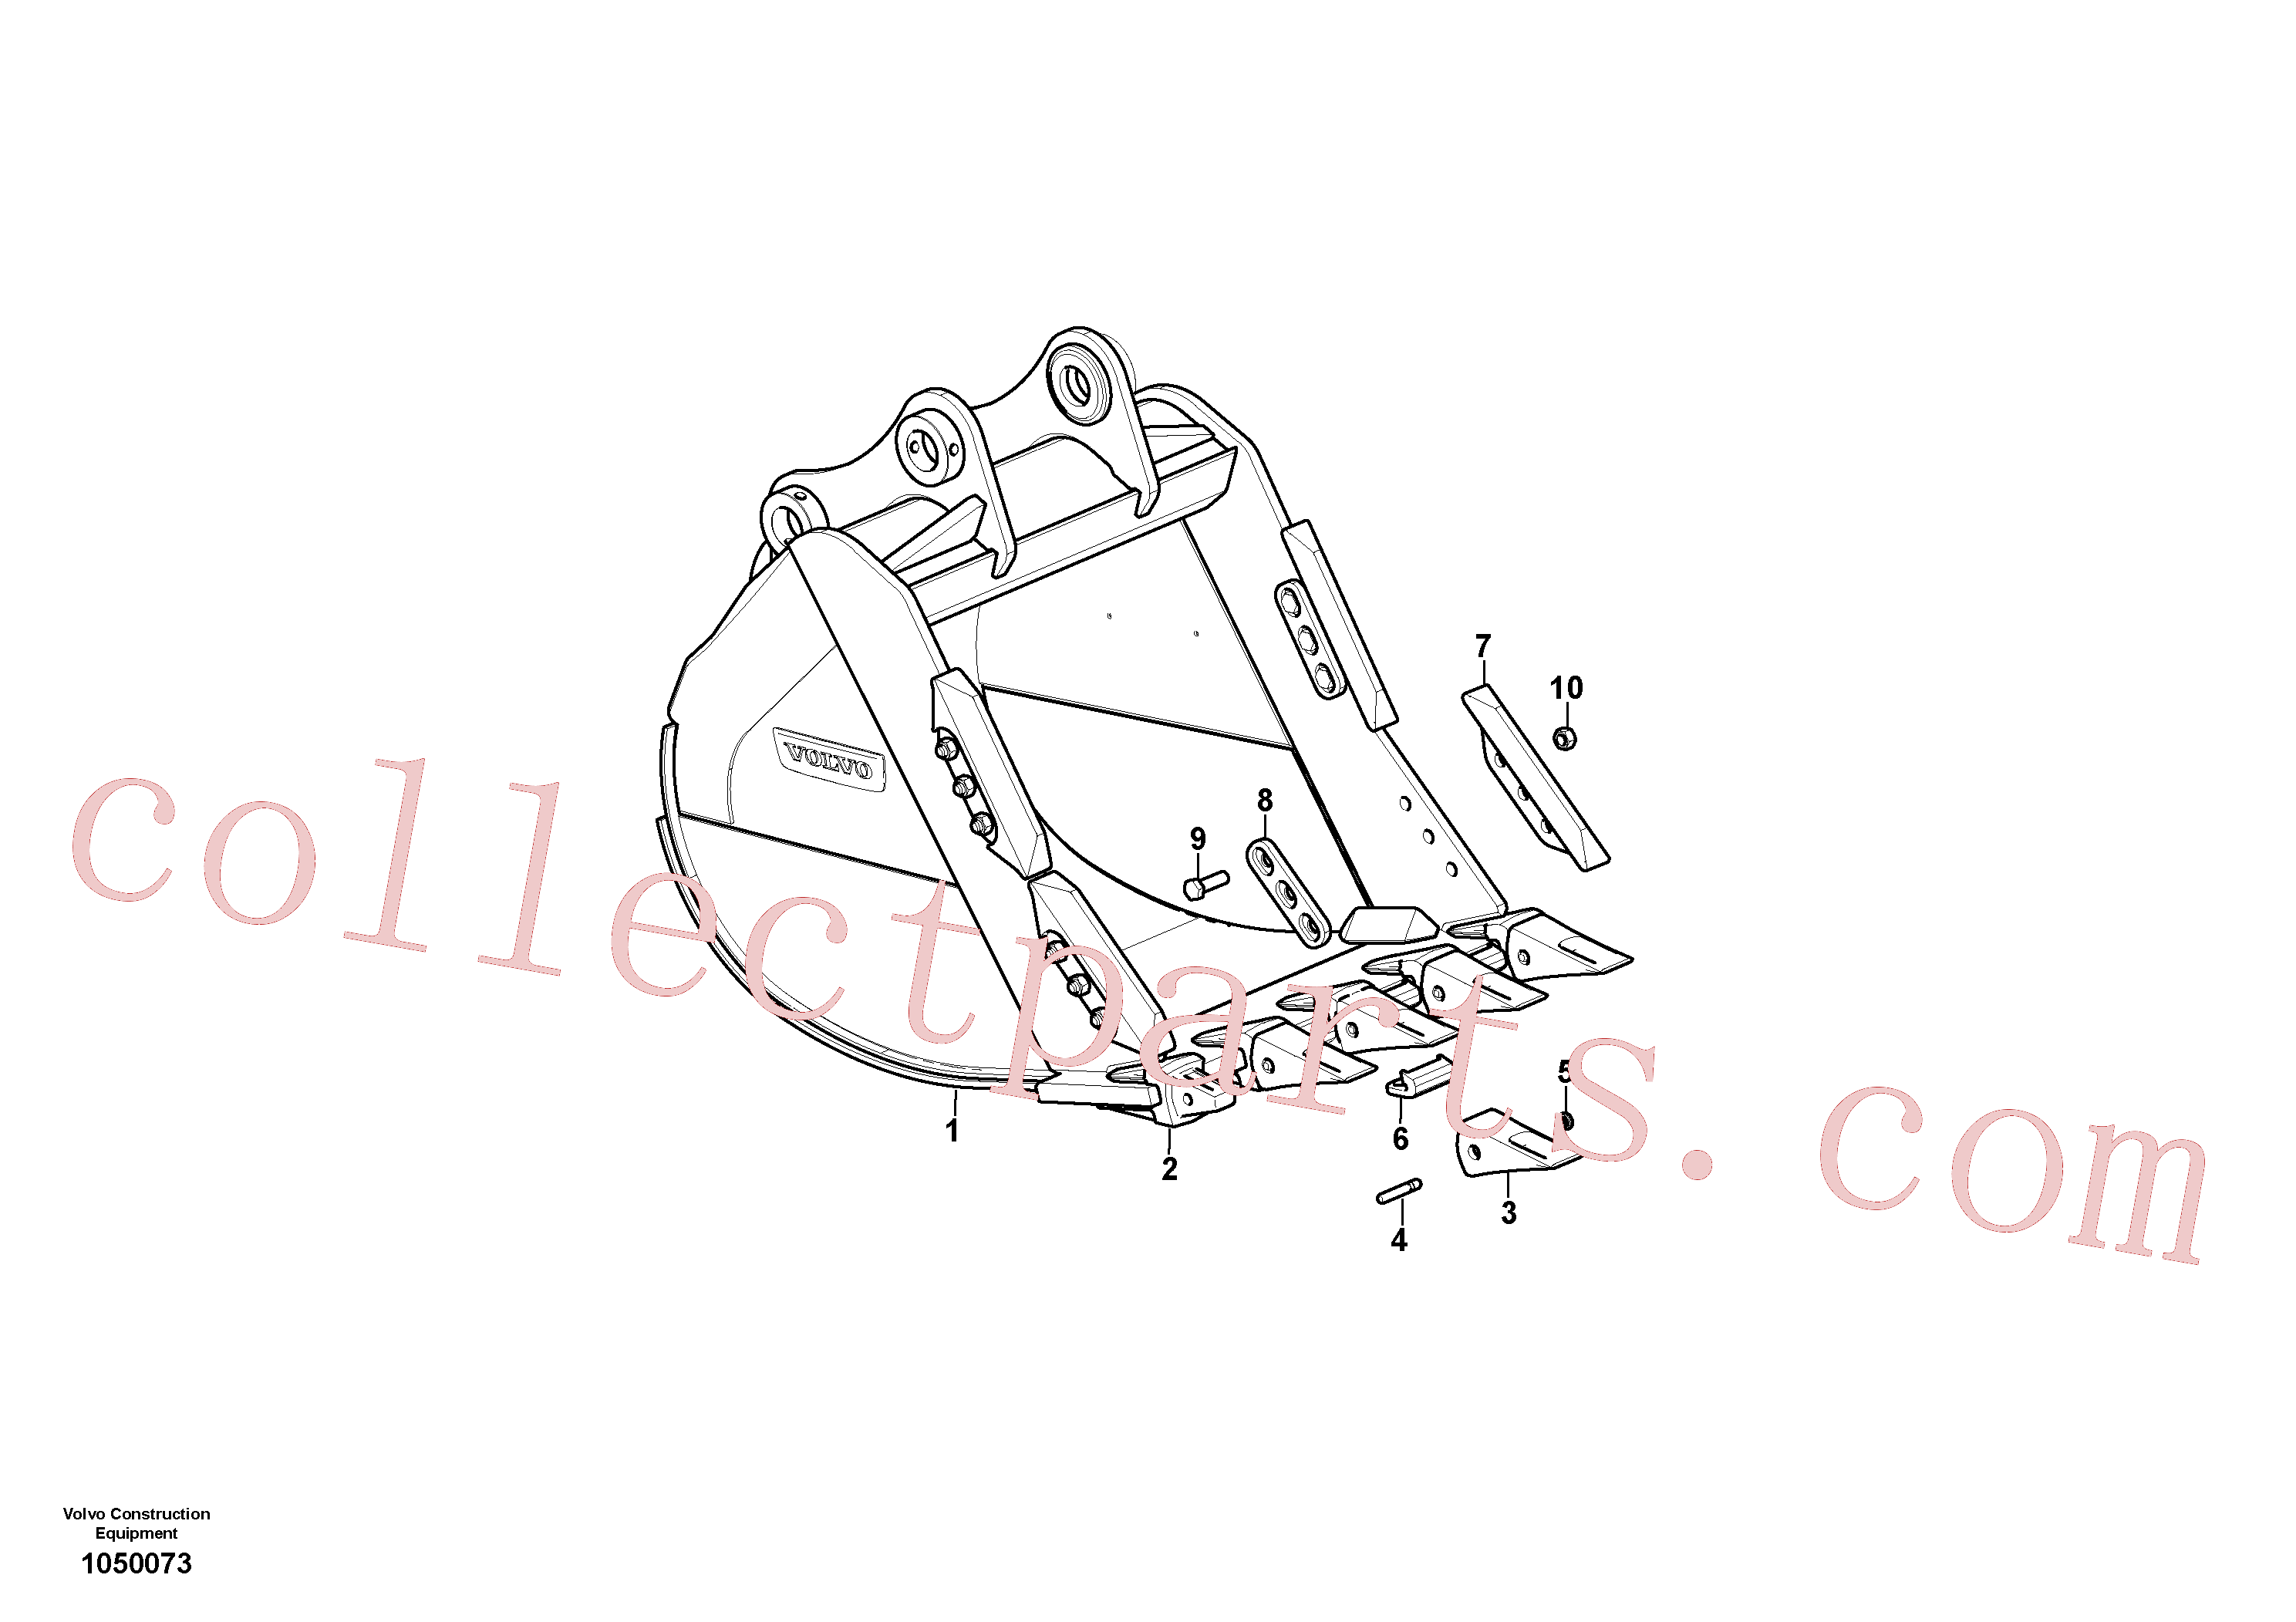 VOE14530543 for Volvo Bucket(1050073 assembly)